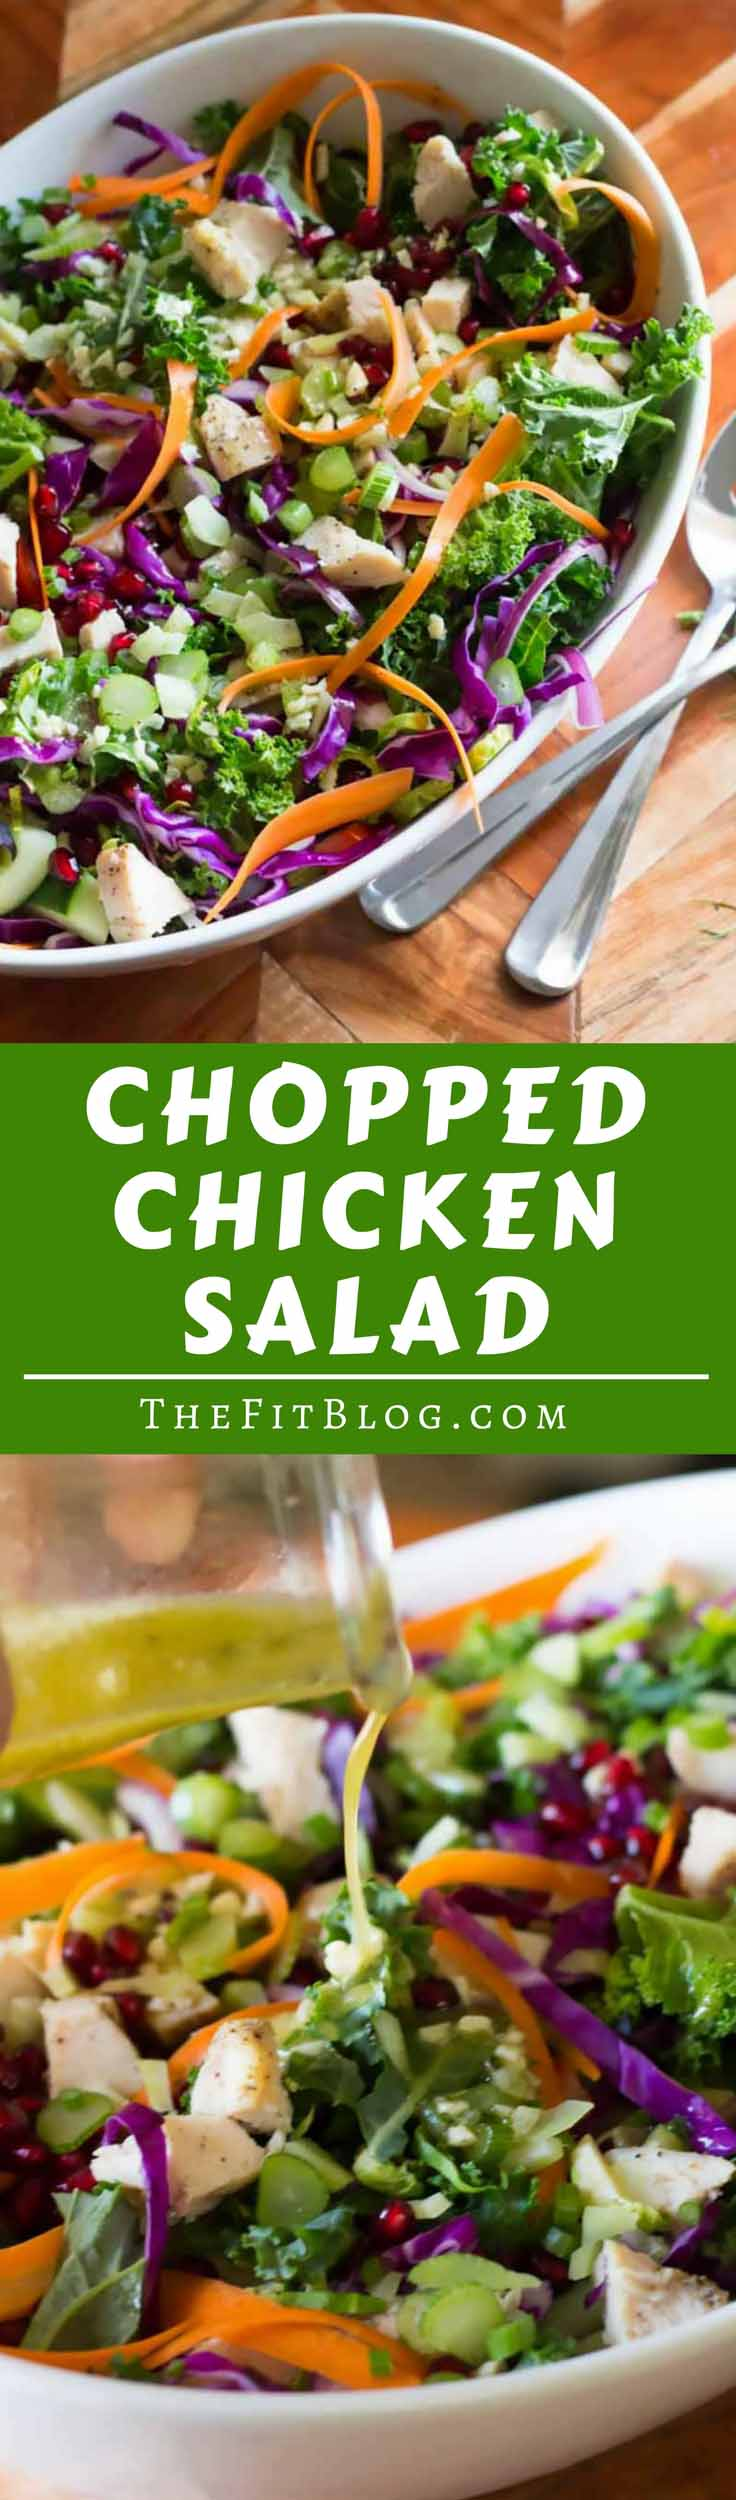 Chopped Chicken Salad utilizes seasonal fruits and vegetables and easy baked chicken to create a hearty, colorful, protein-packed salad! |thefitblog.com